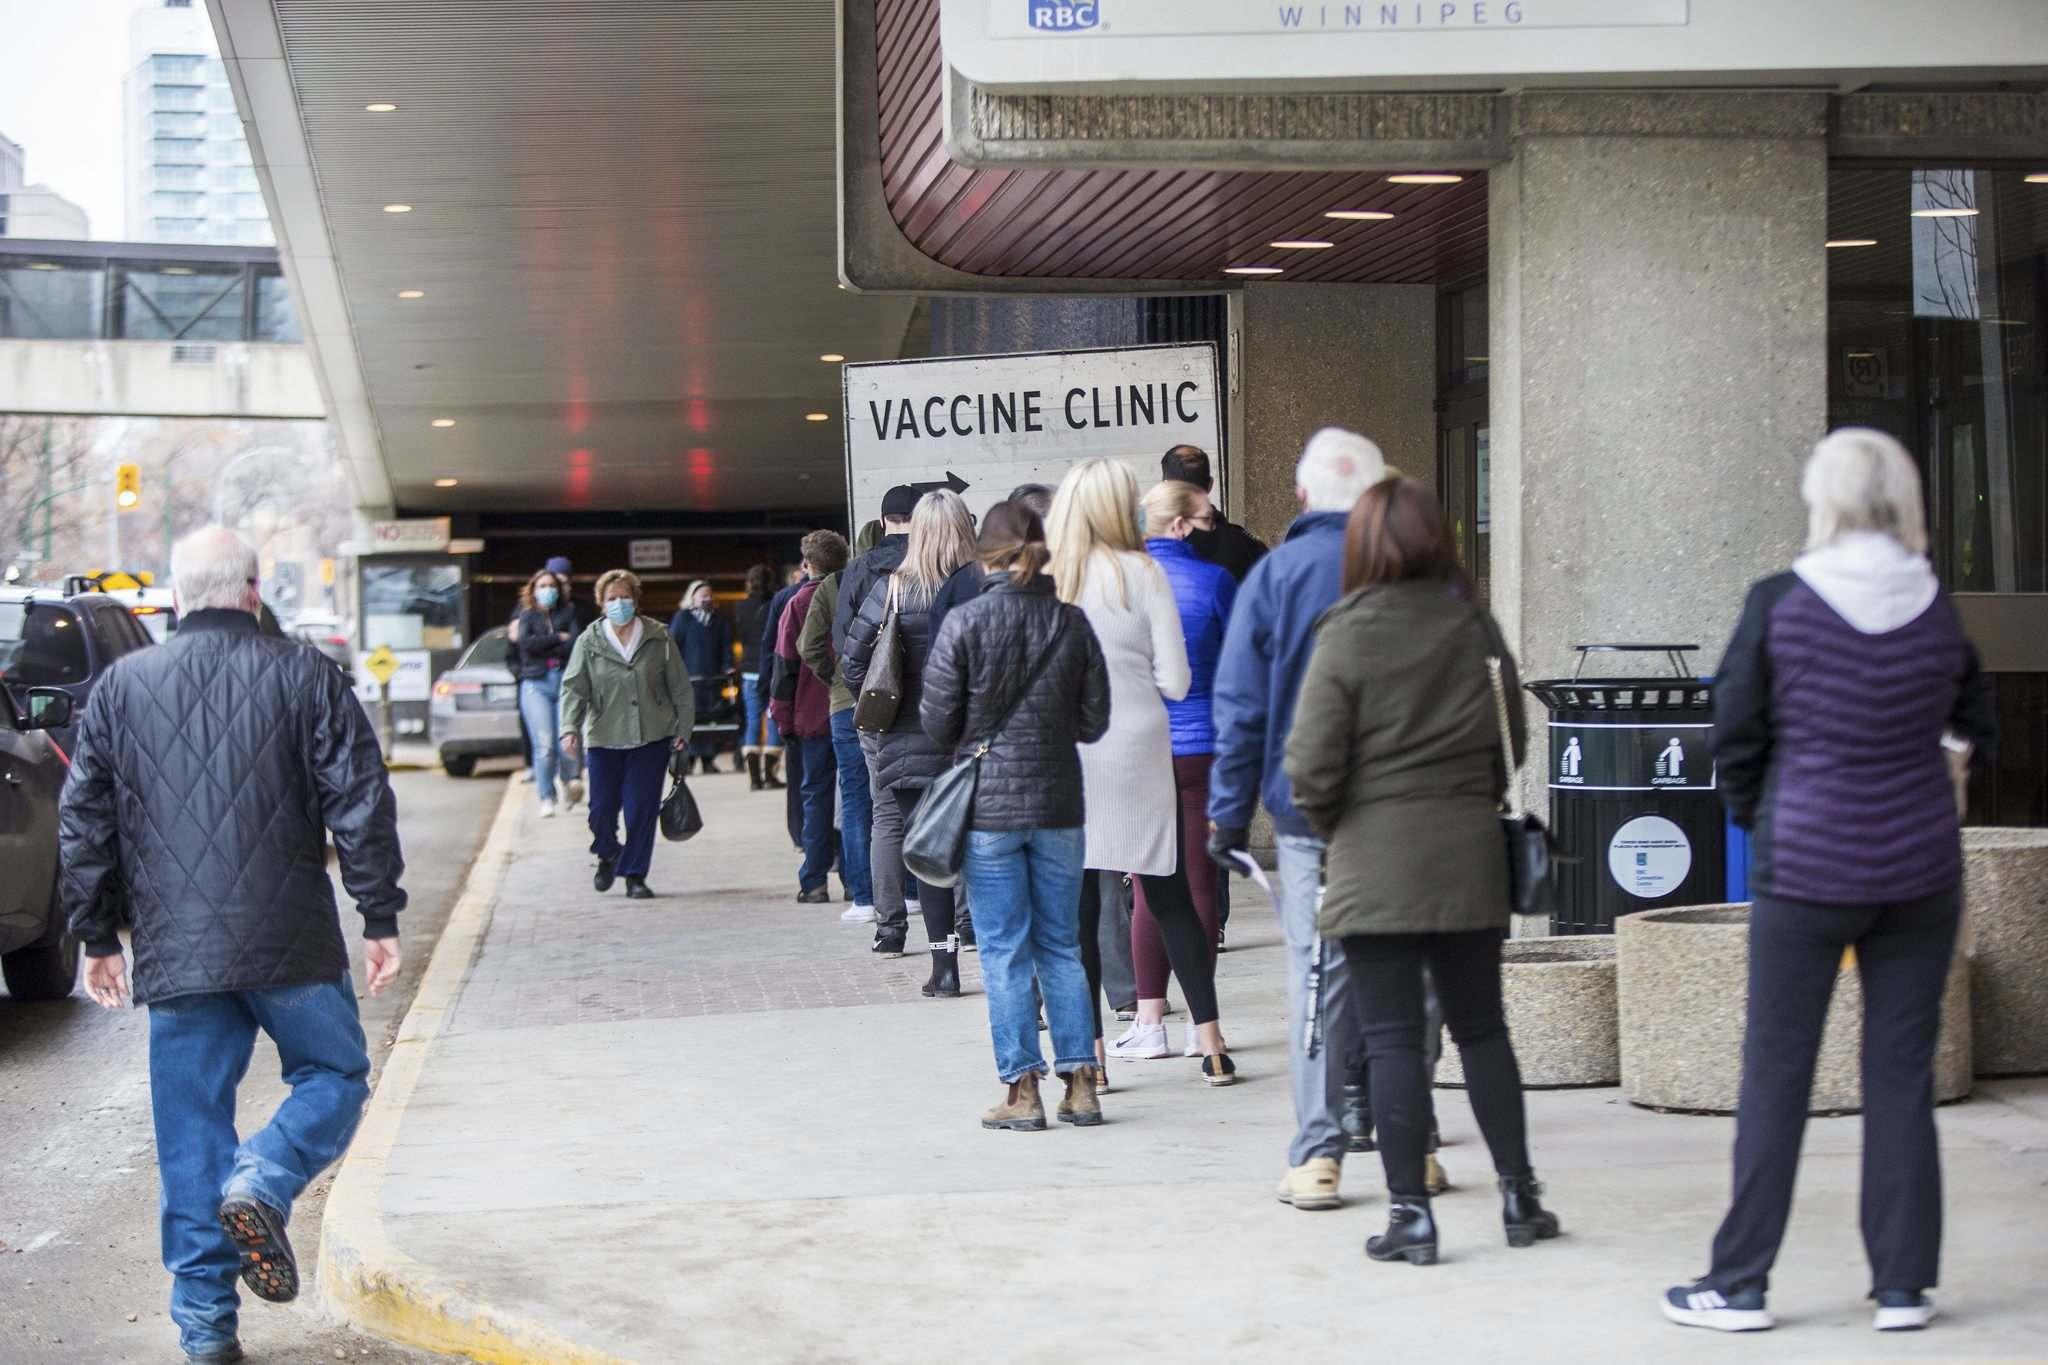 A line snaked outside the convention centre Friday afternoon because of a computer glitch that affected staffing. (Mikaela MacKenzie / Winnipeg Free Press)